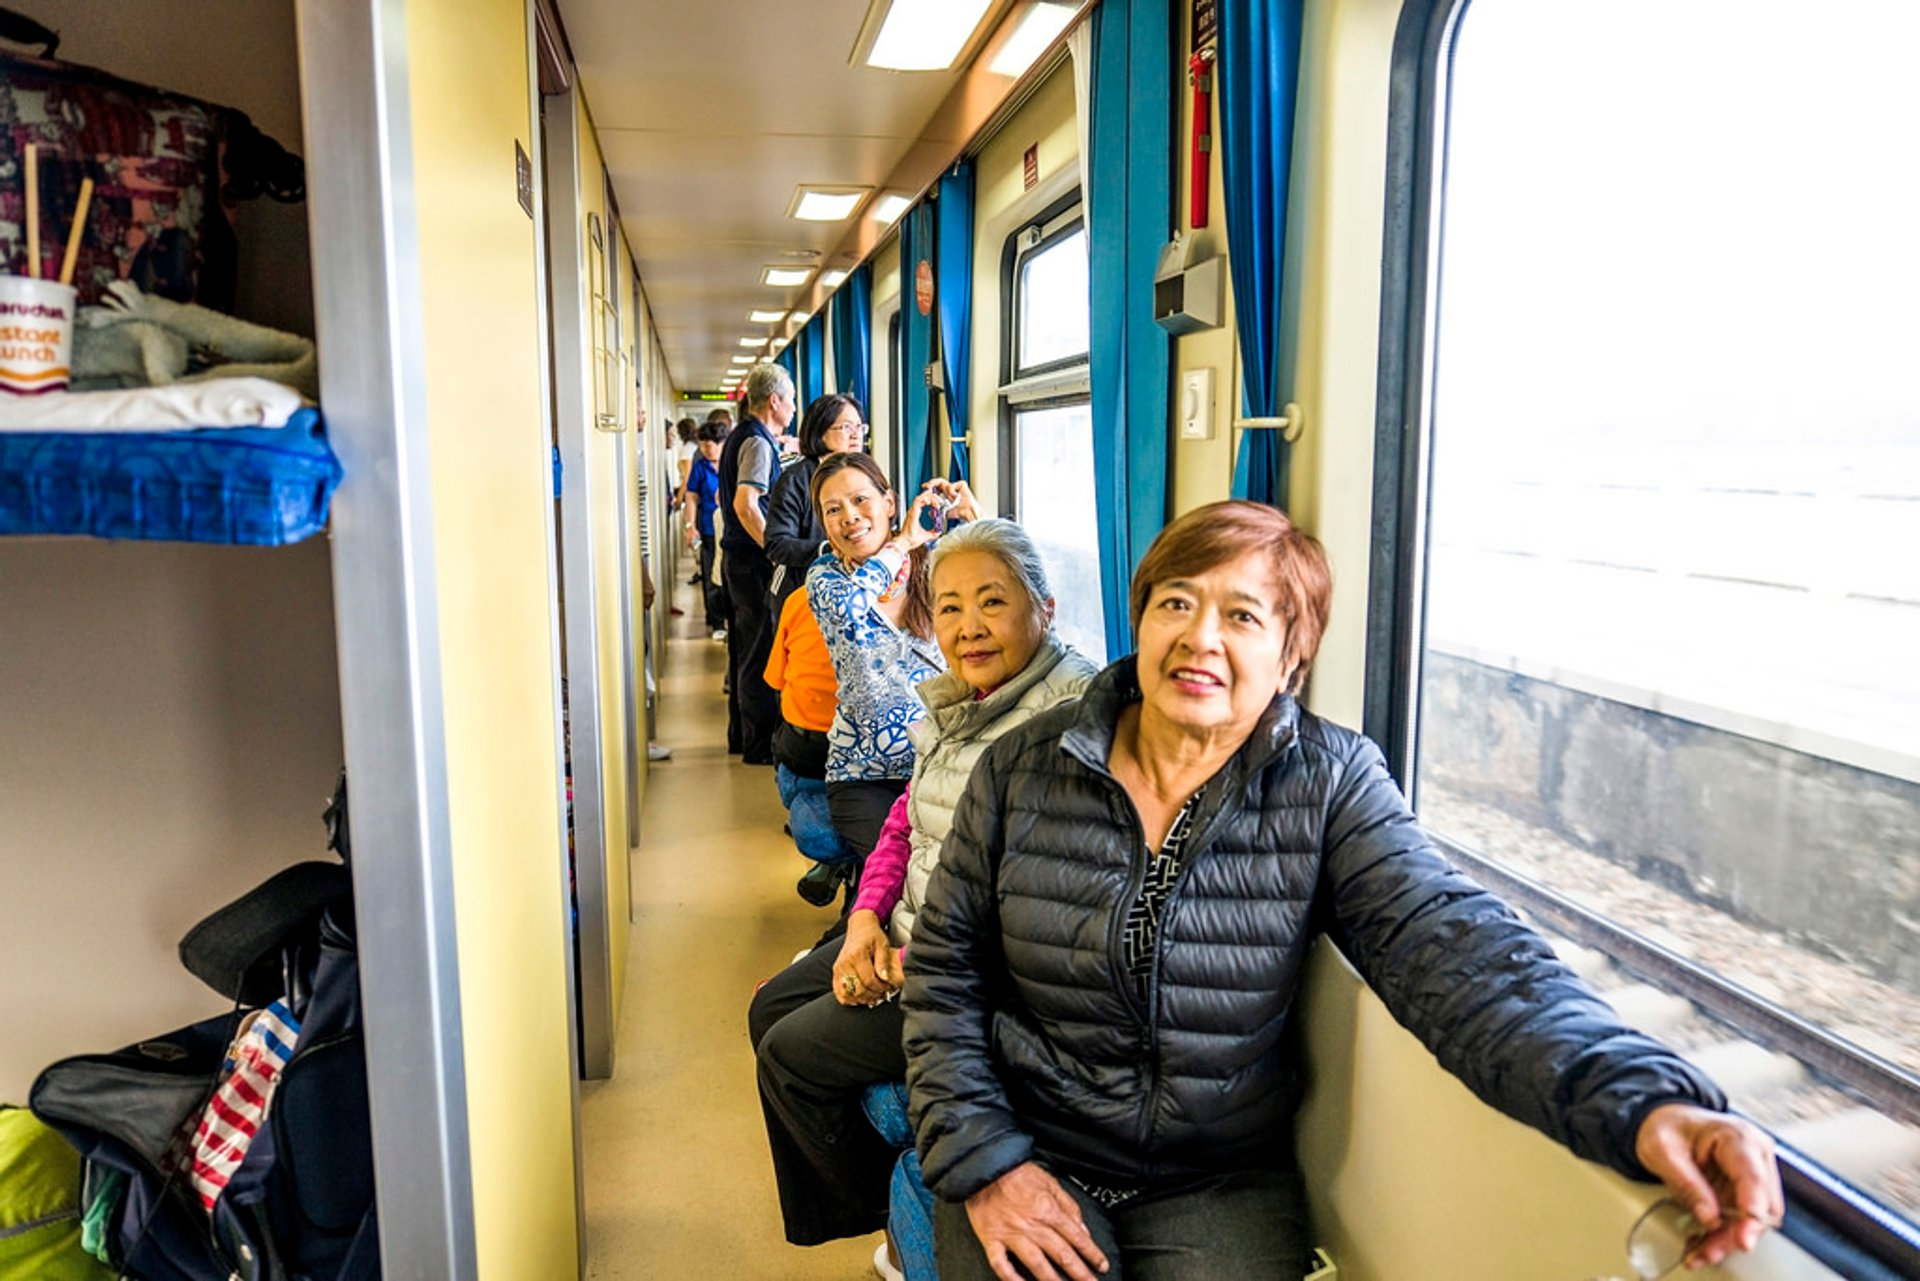 Train ride from Xining to Lhasa, Tibet, China 2020